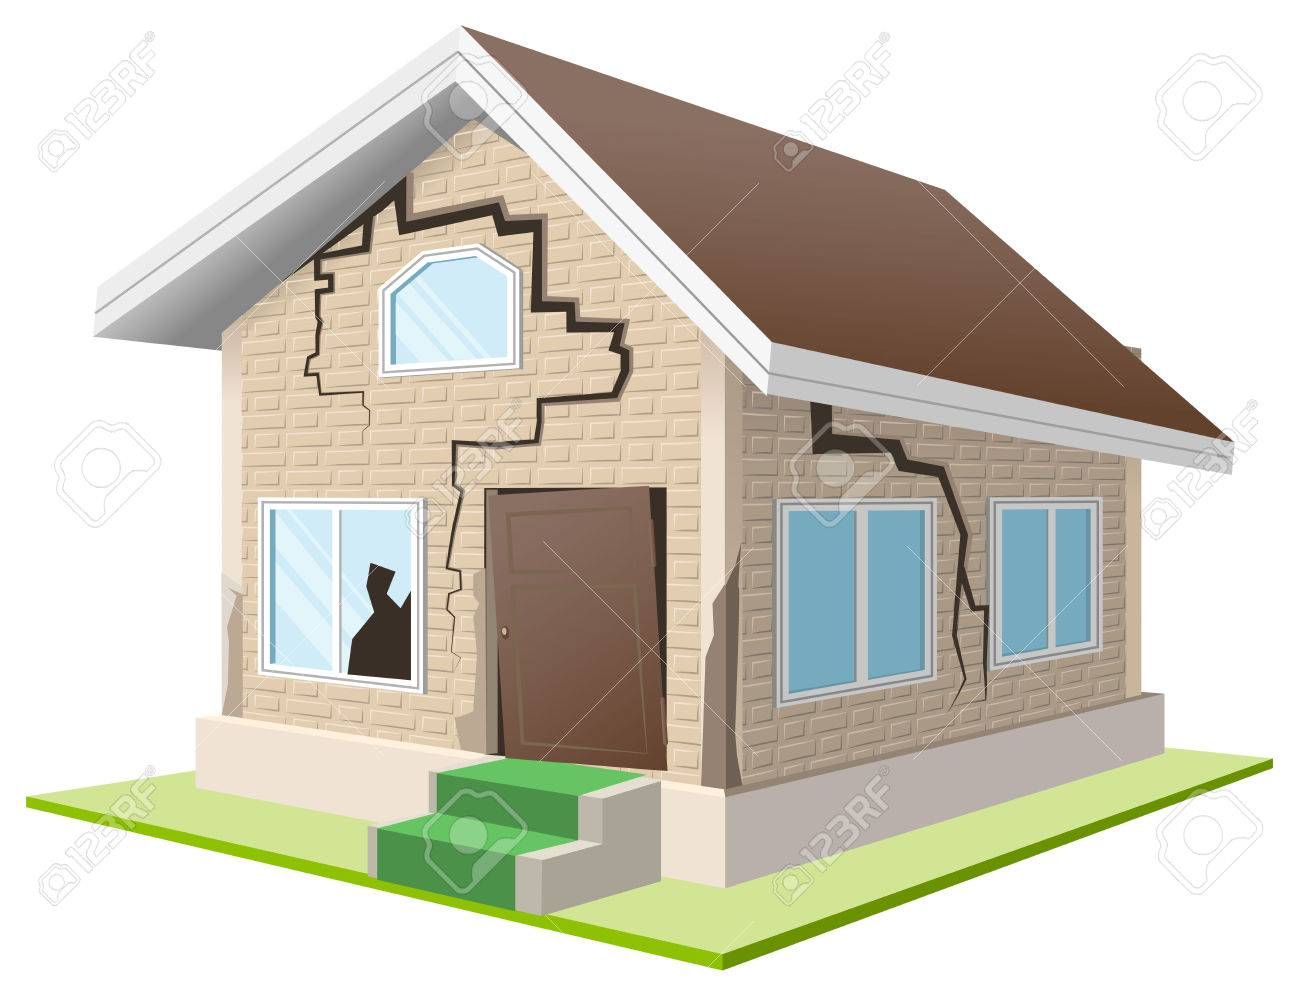 Earthquake cracked wall of house. Vacation home. Property insurance. Isolated illustration in vector format - 49501641